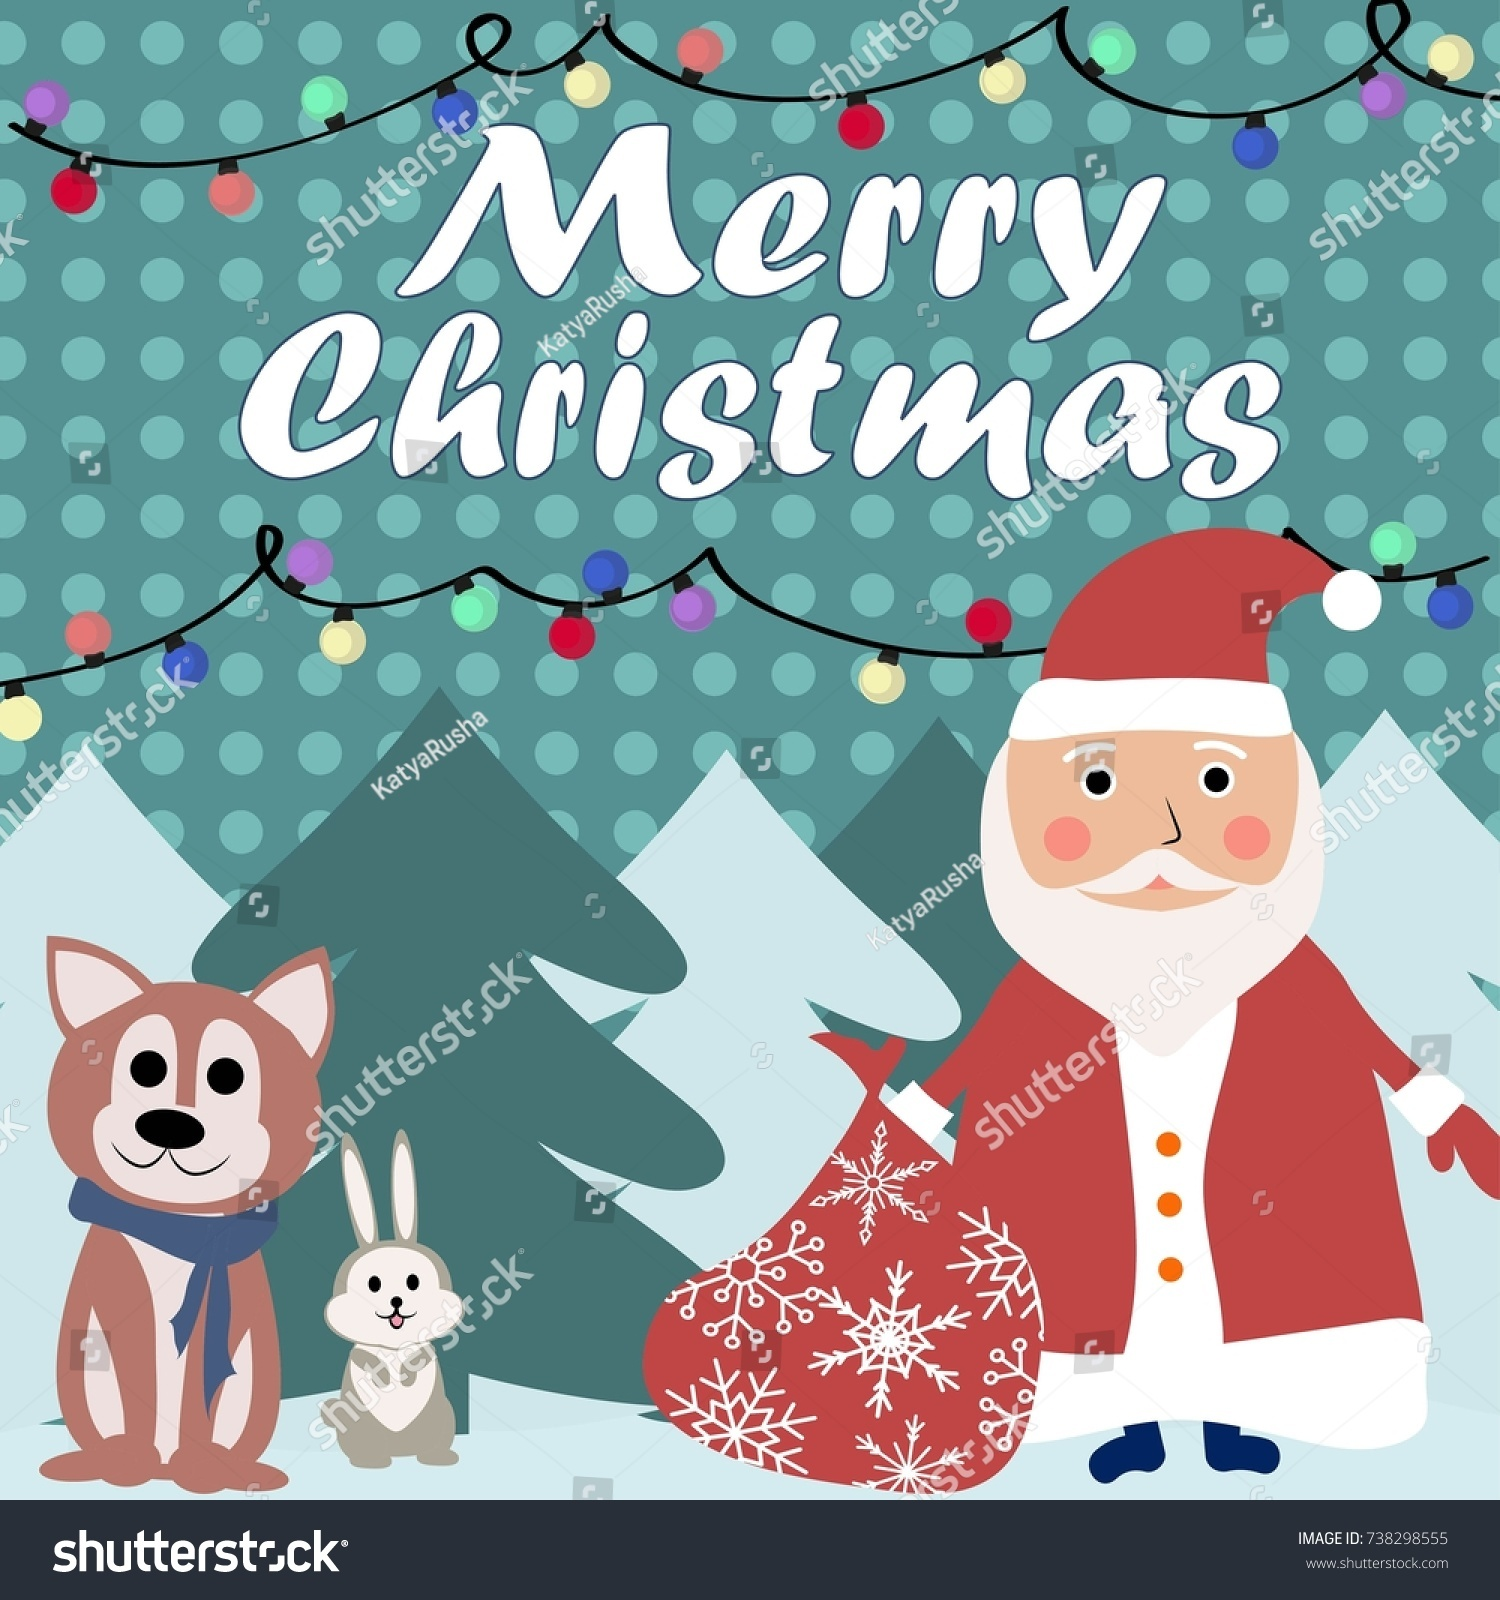 merry christmas card 2018